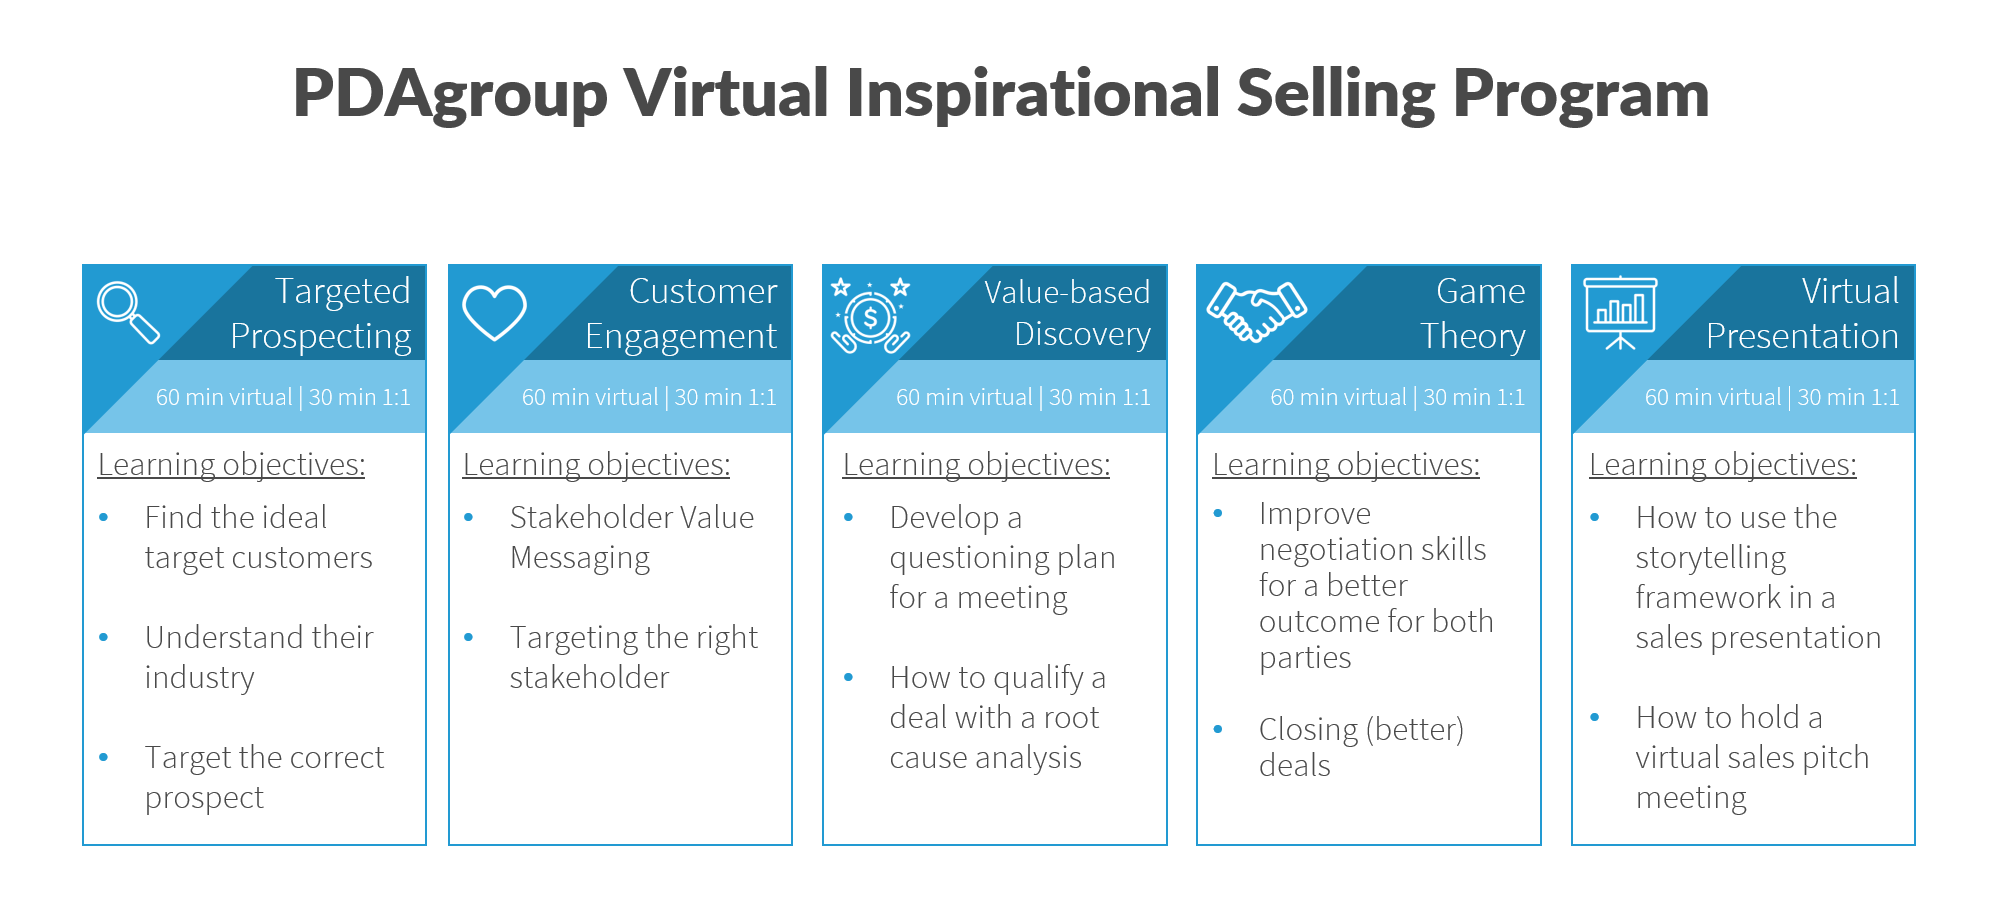 PDAgroup Virtual Inspirational selling program